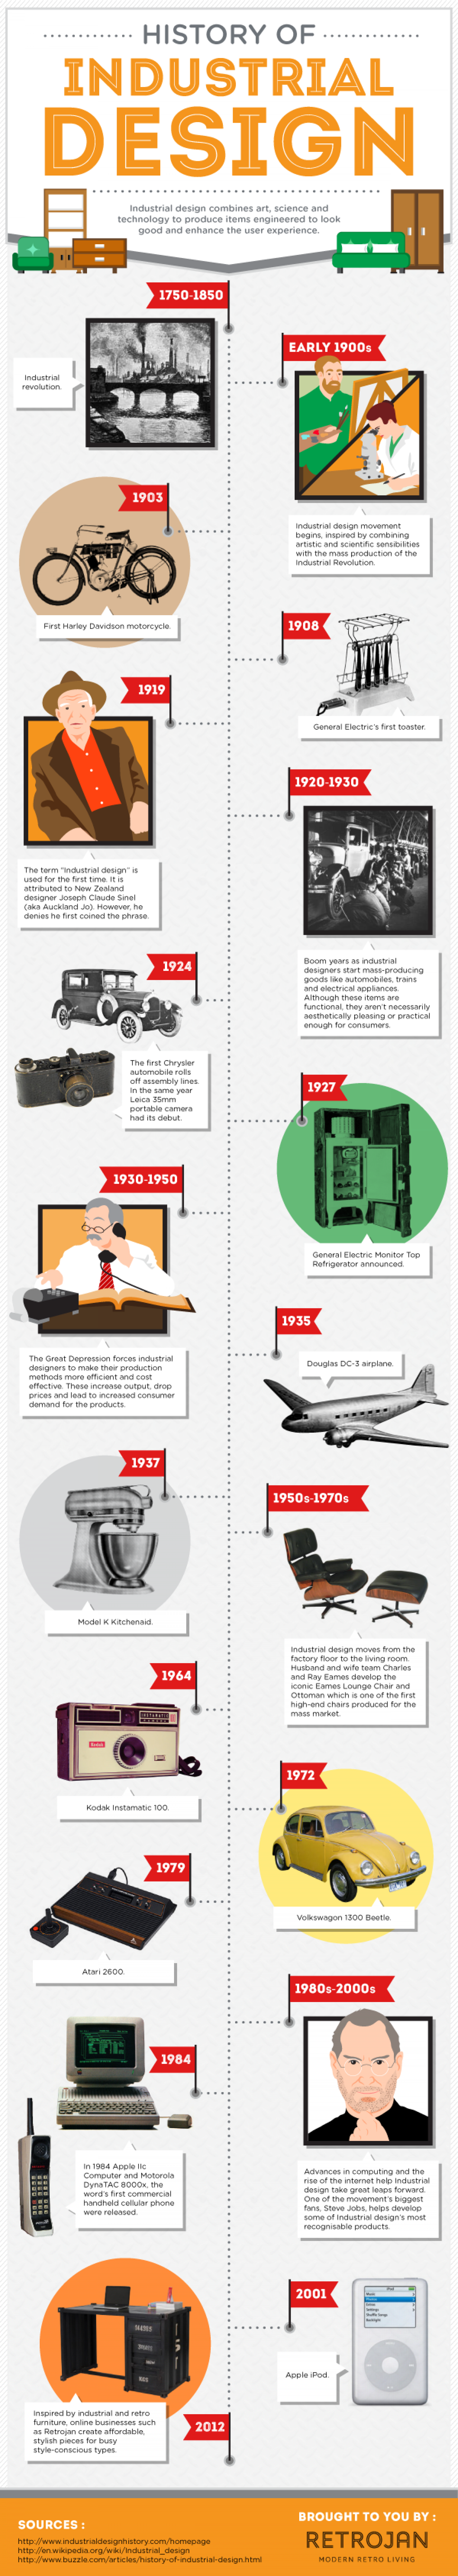 The History of Industrial Design Infographic